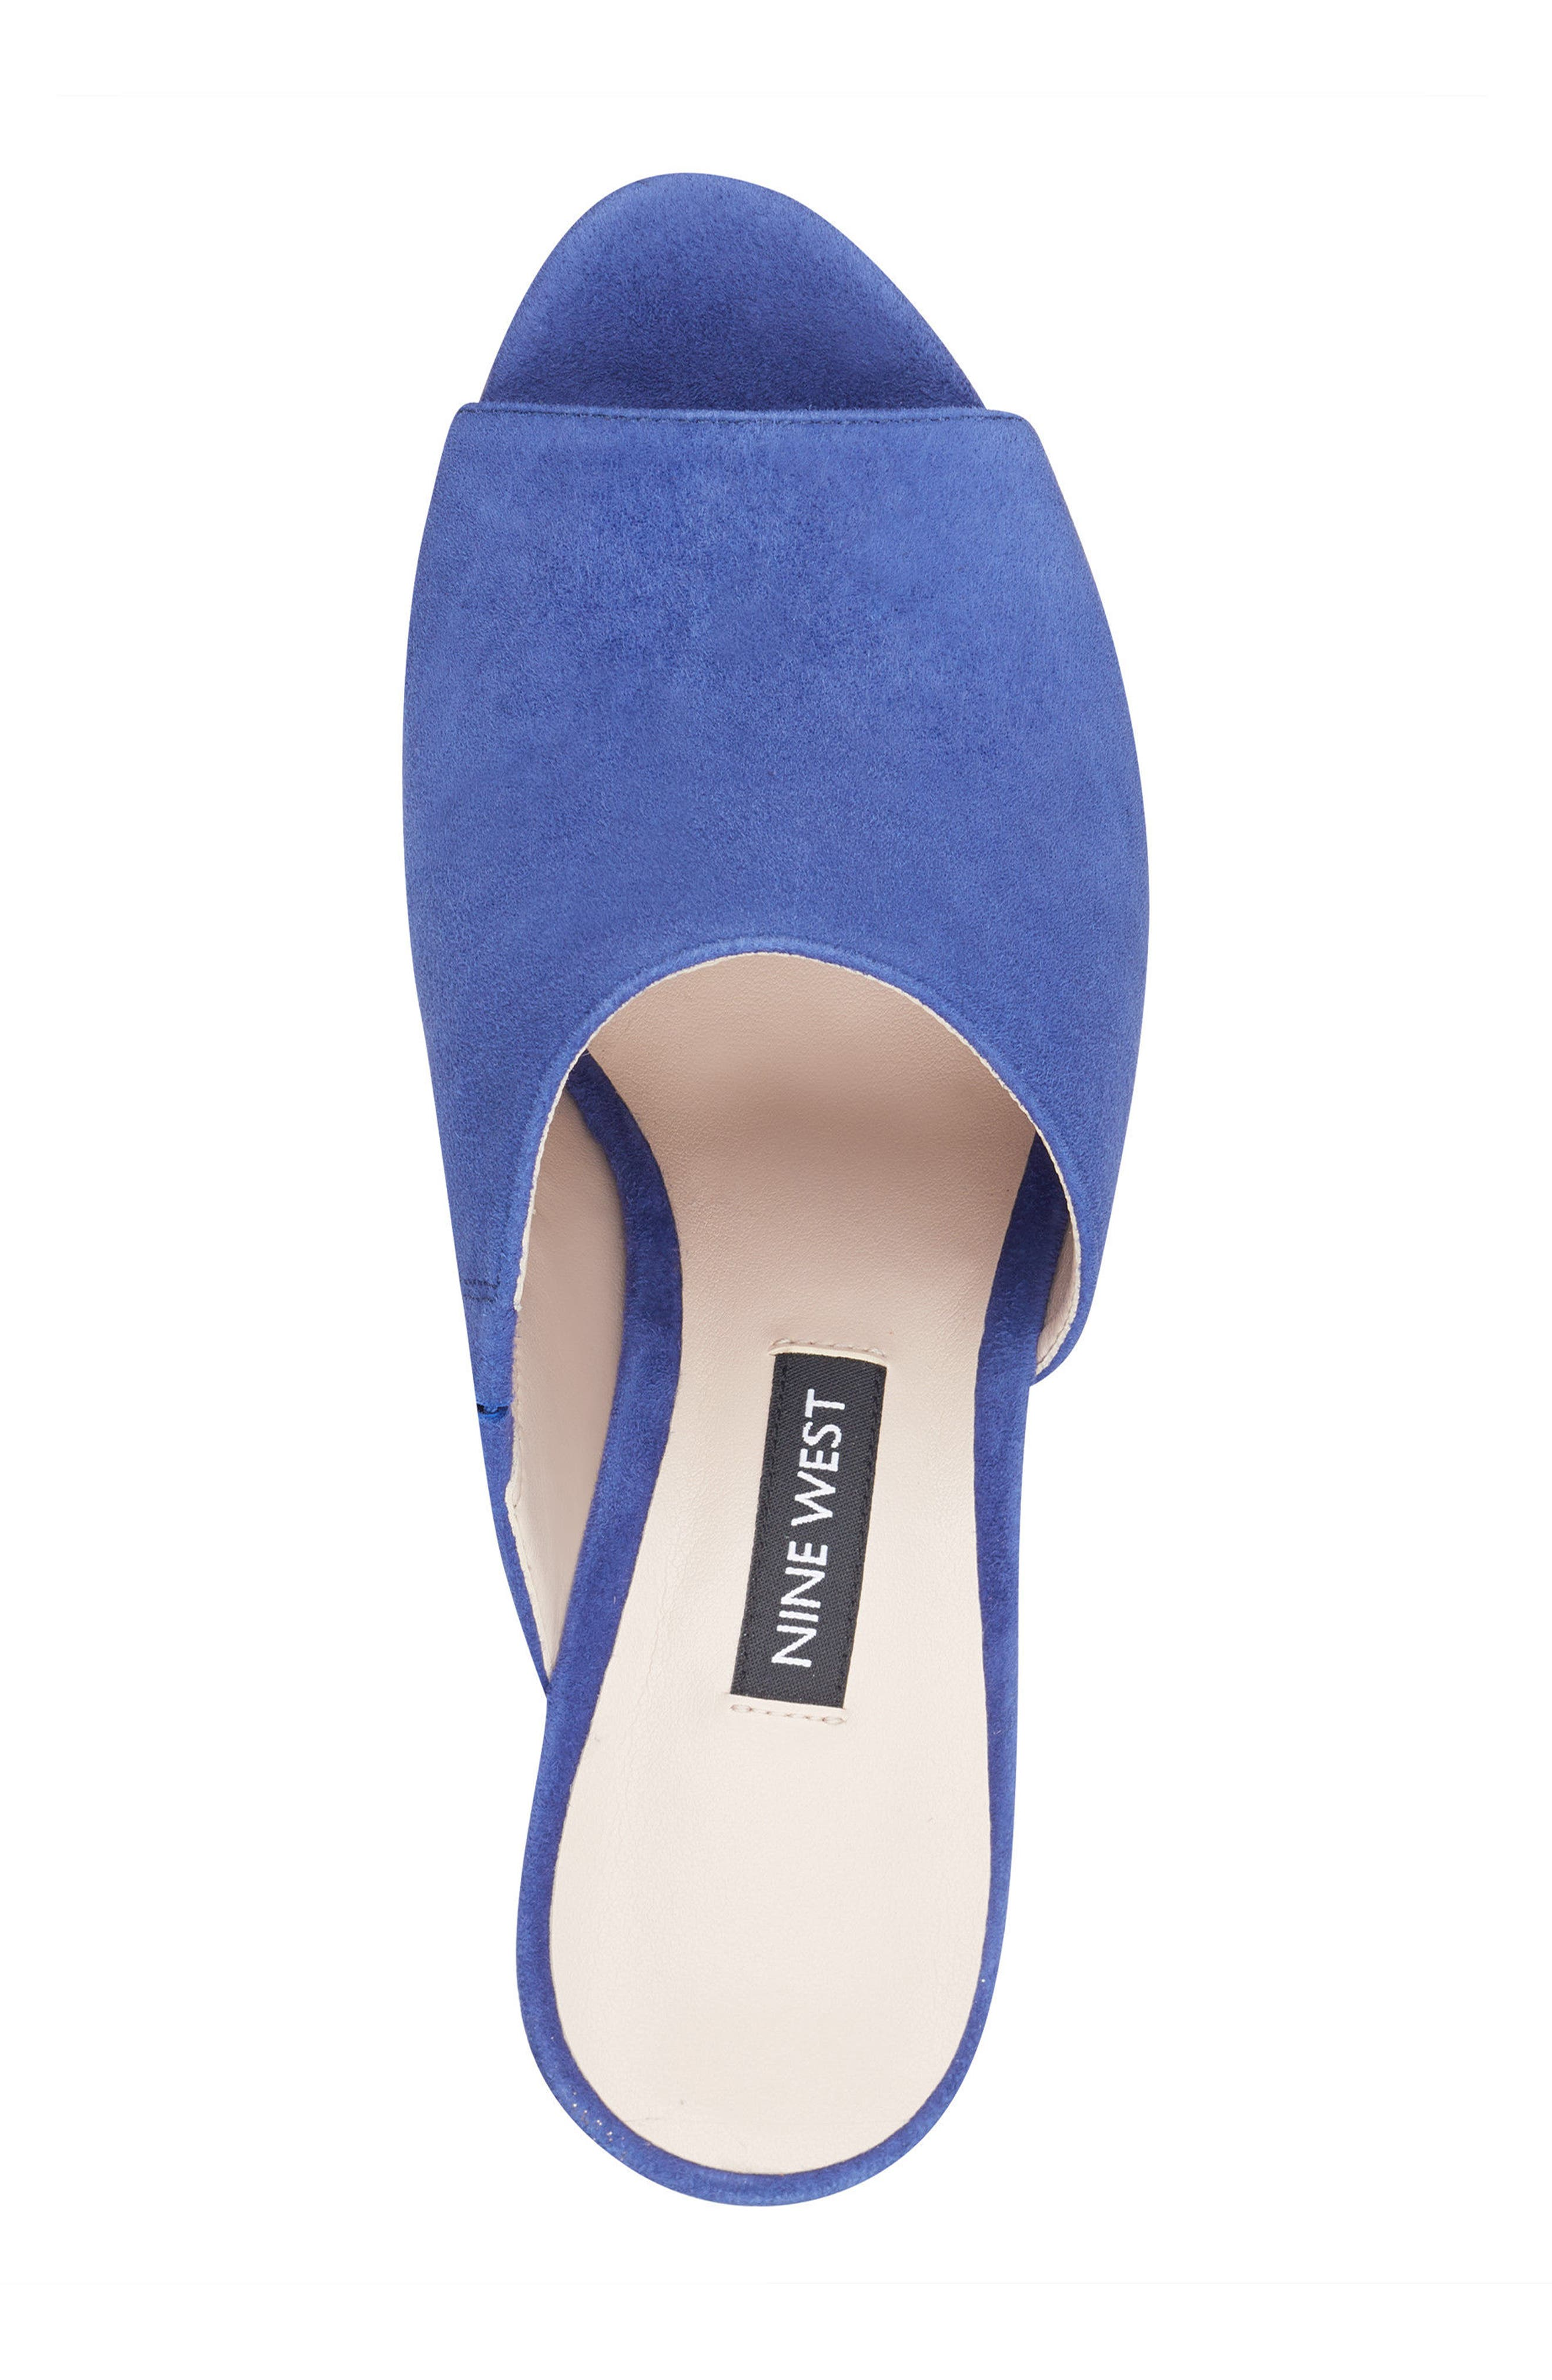 Janissah Wedge,                             Alternate thumbnail 5, color,                             DARK BLUE SUEDE